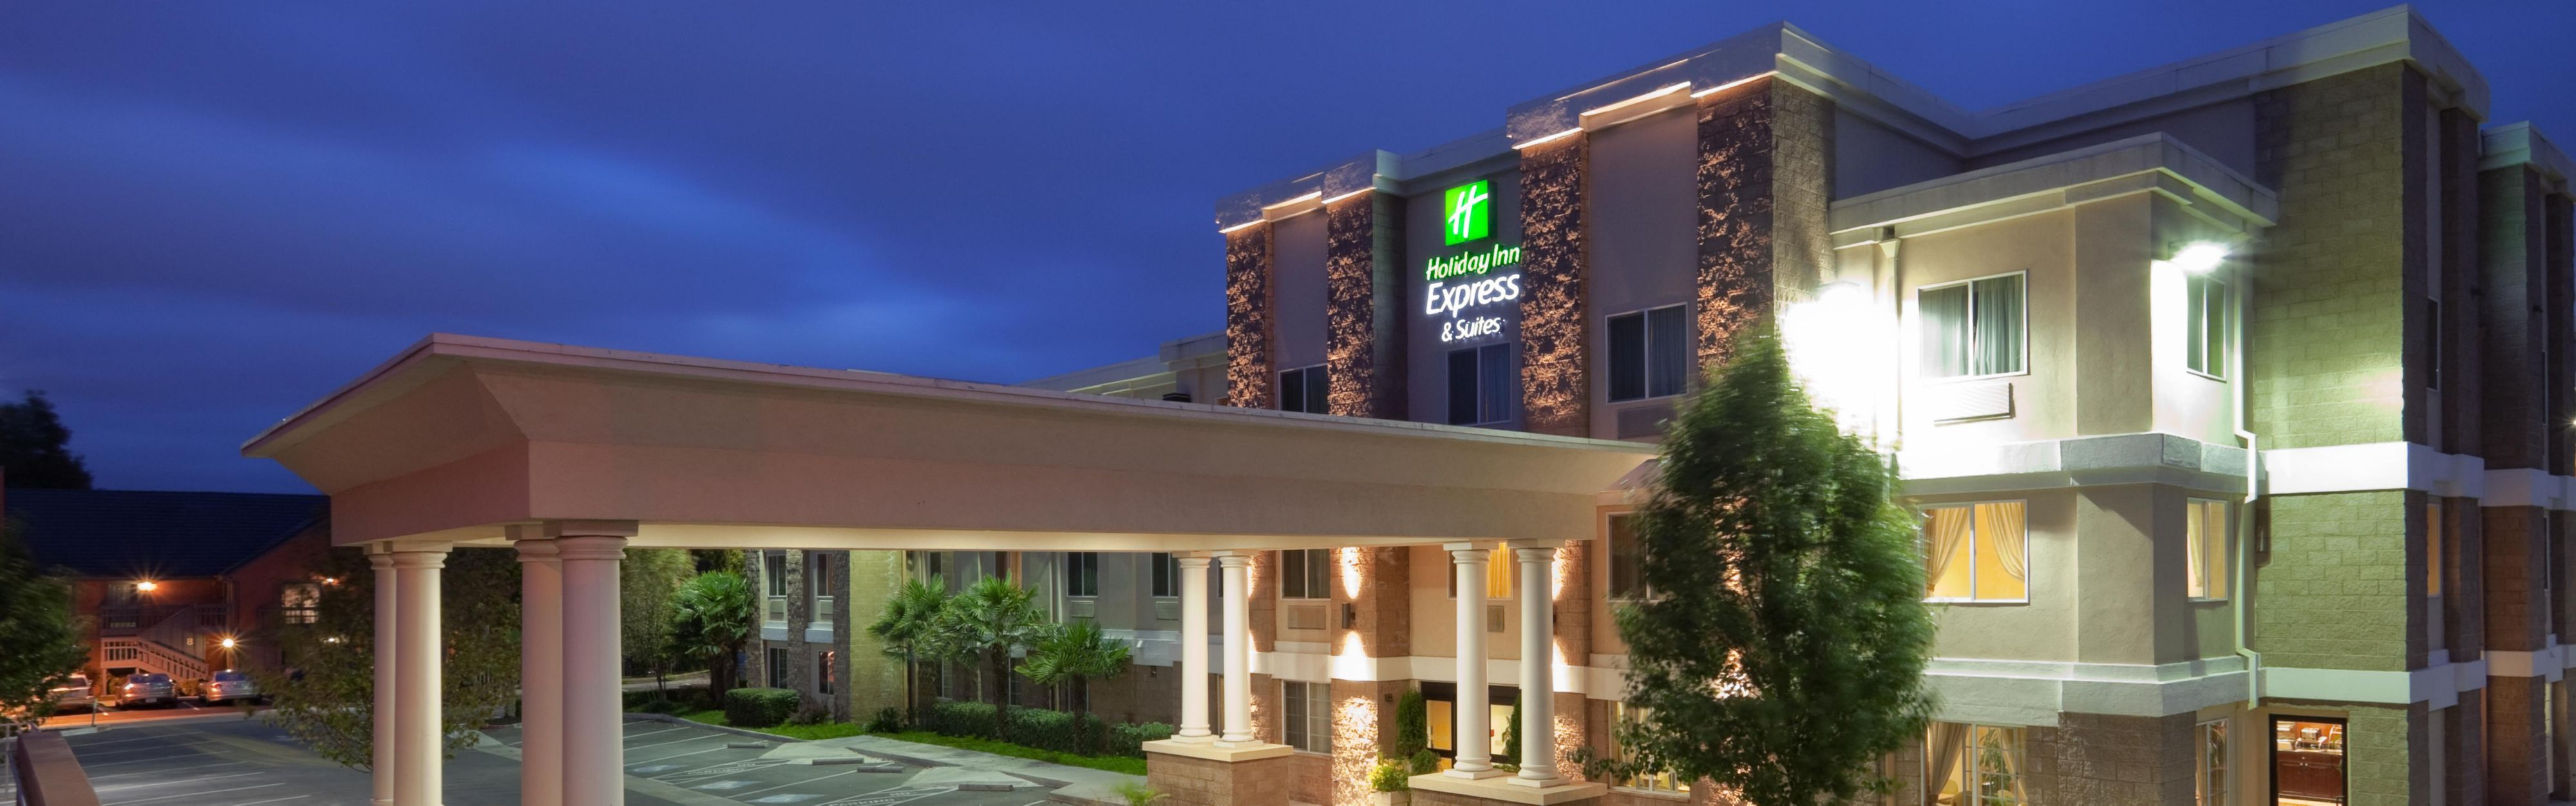 Holiday Inn Express & Suites Livermore image 0